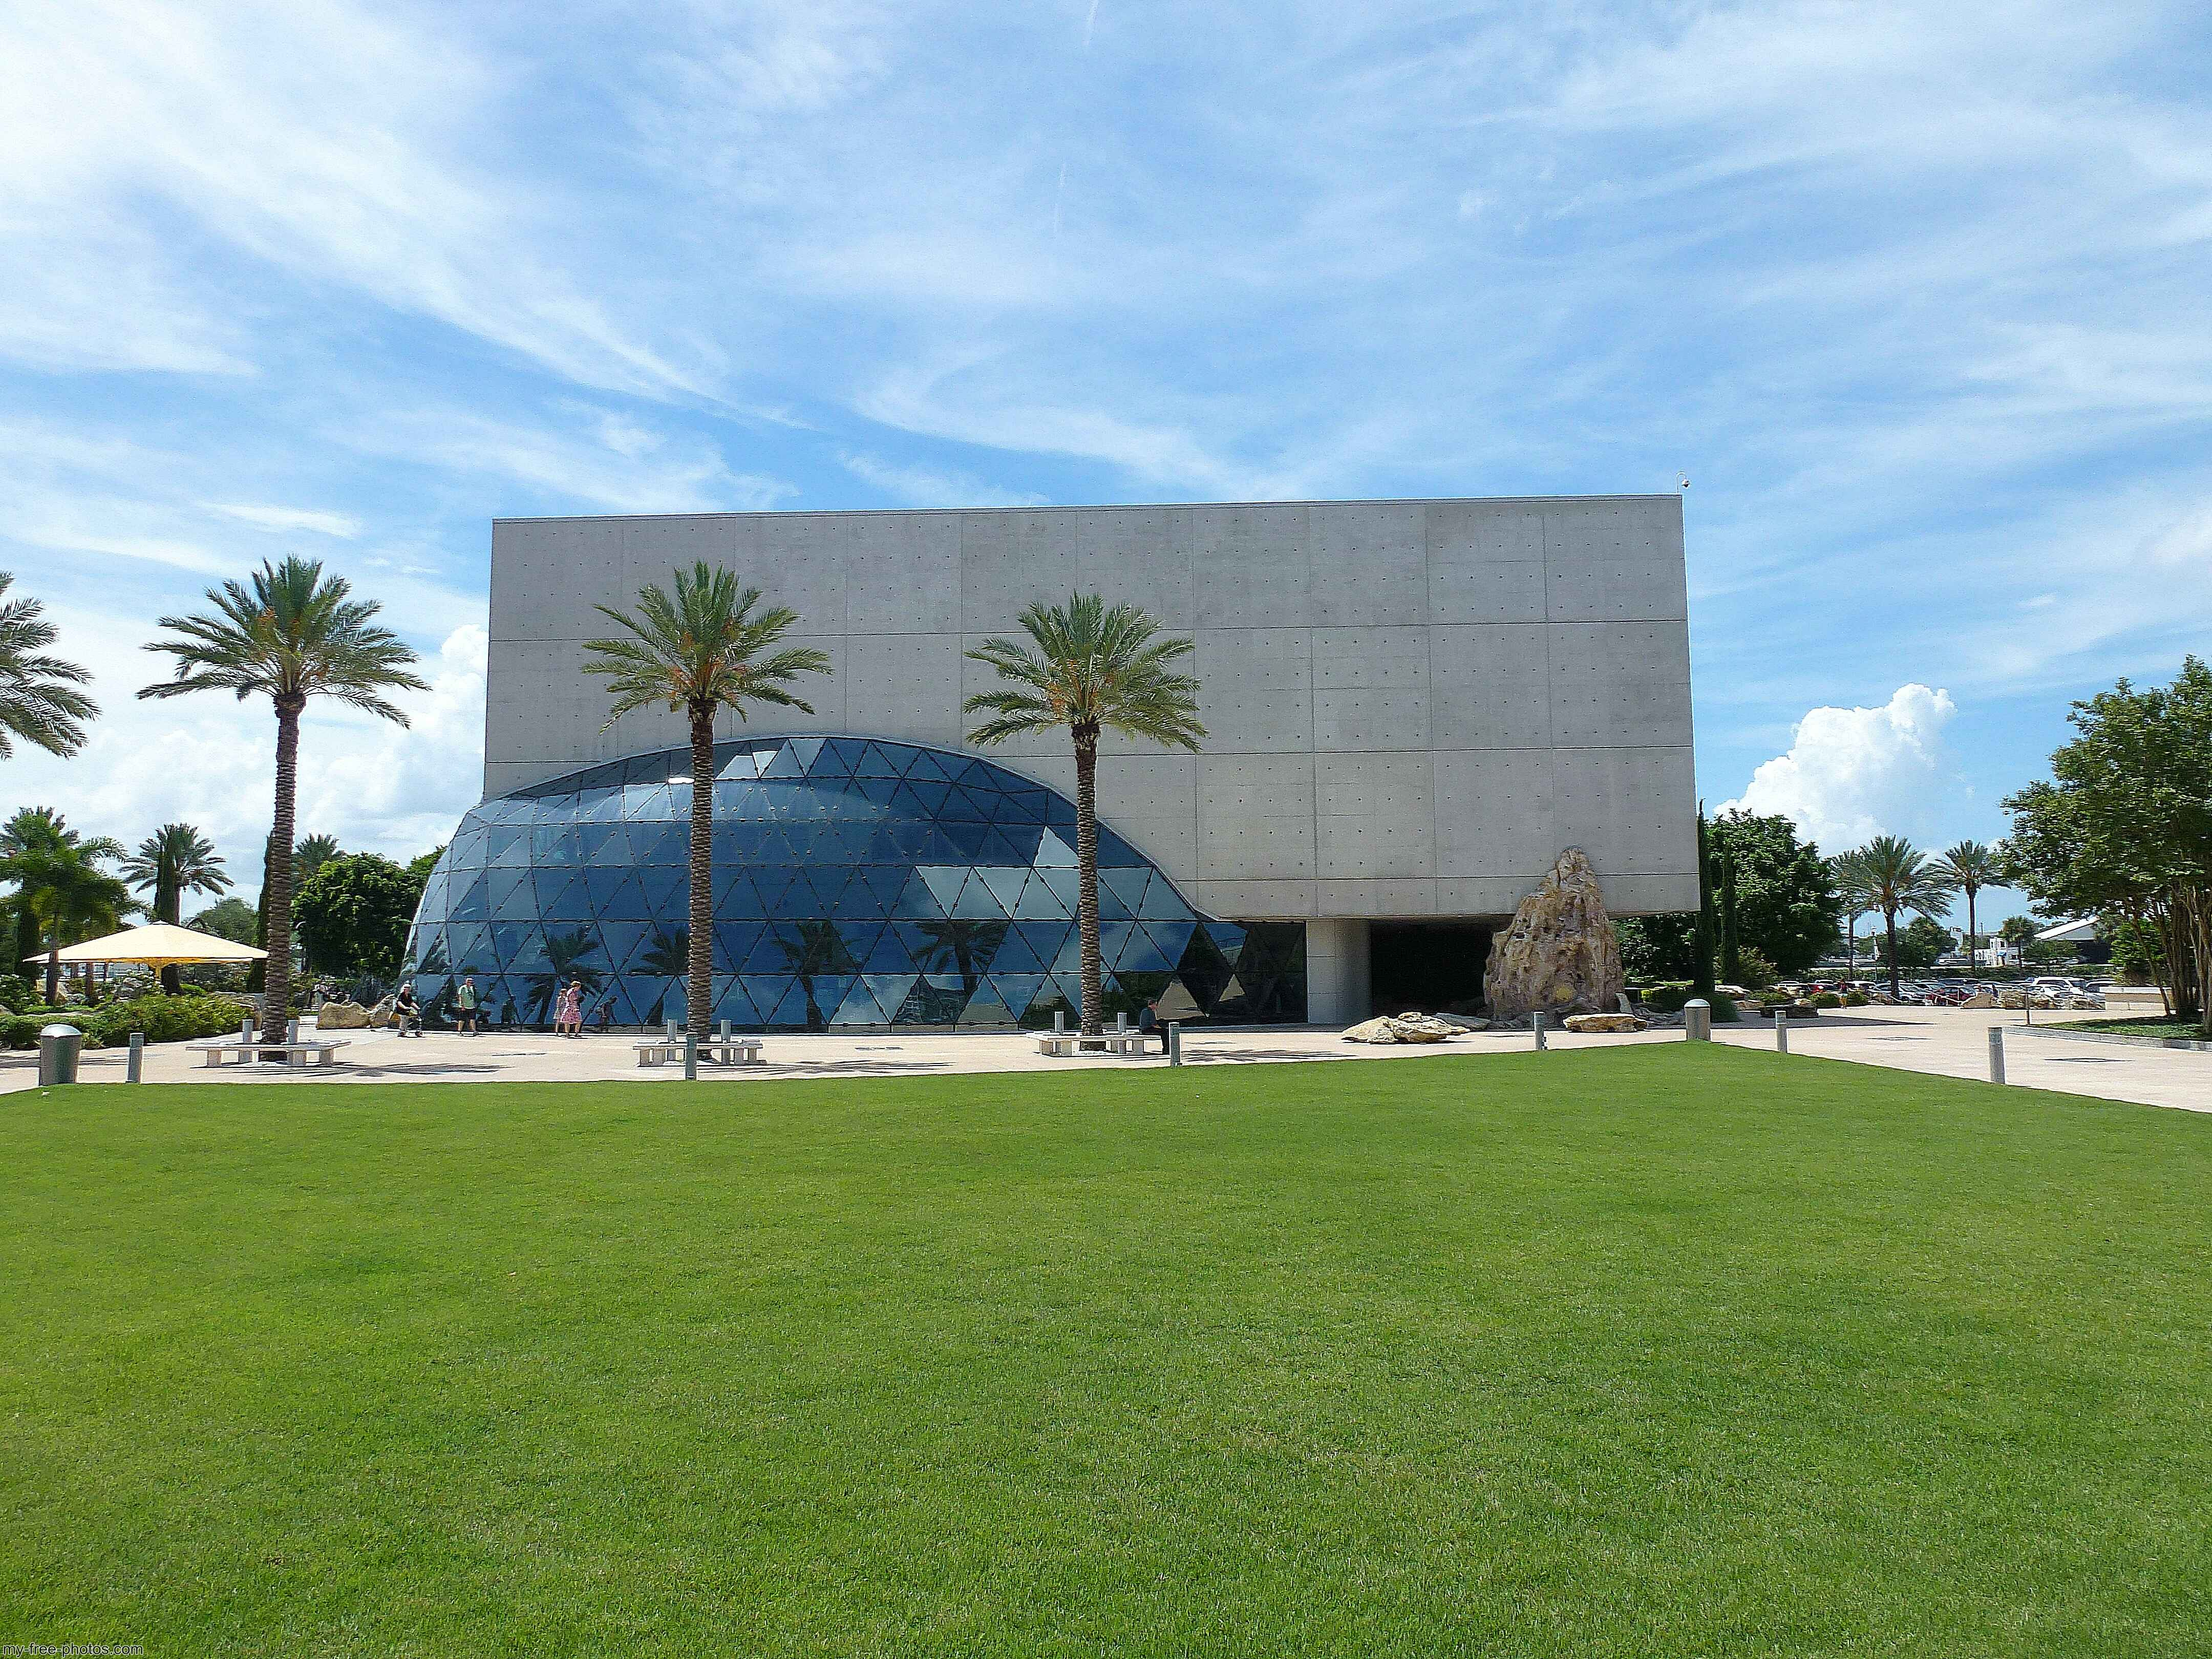 The Salvador Dali Museum